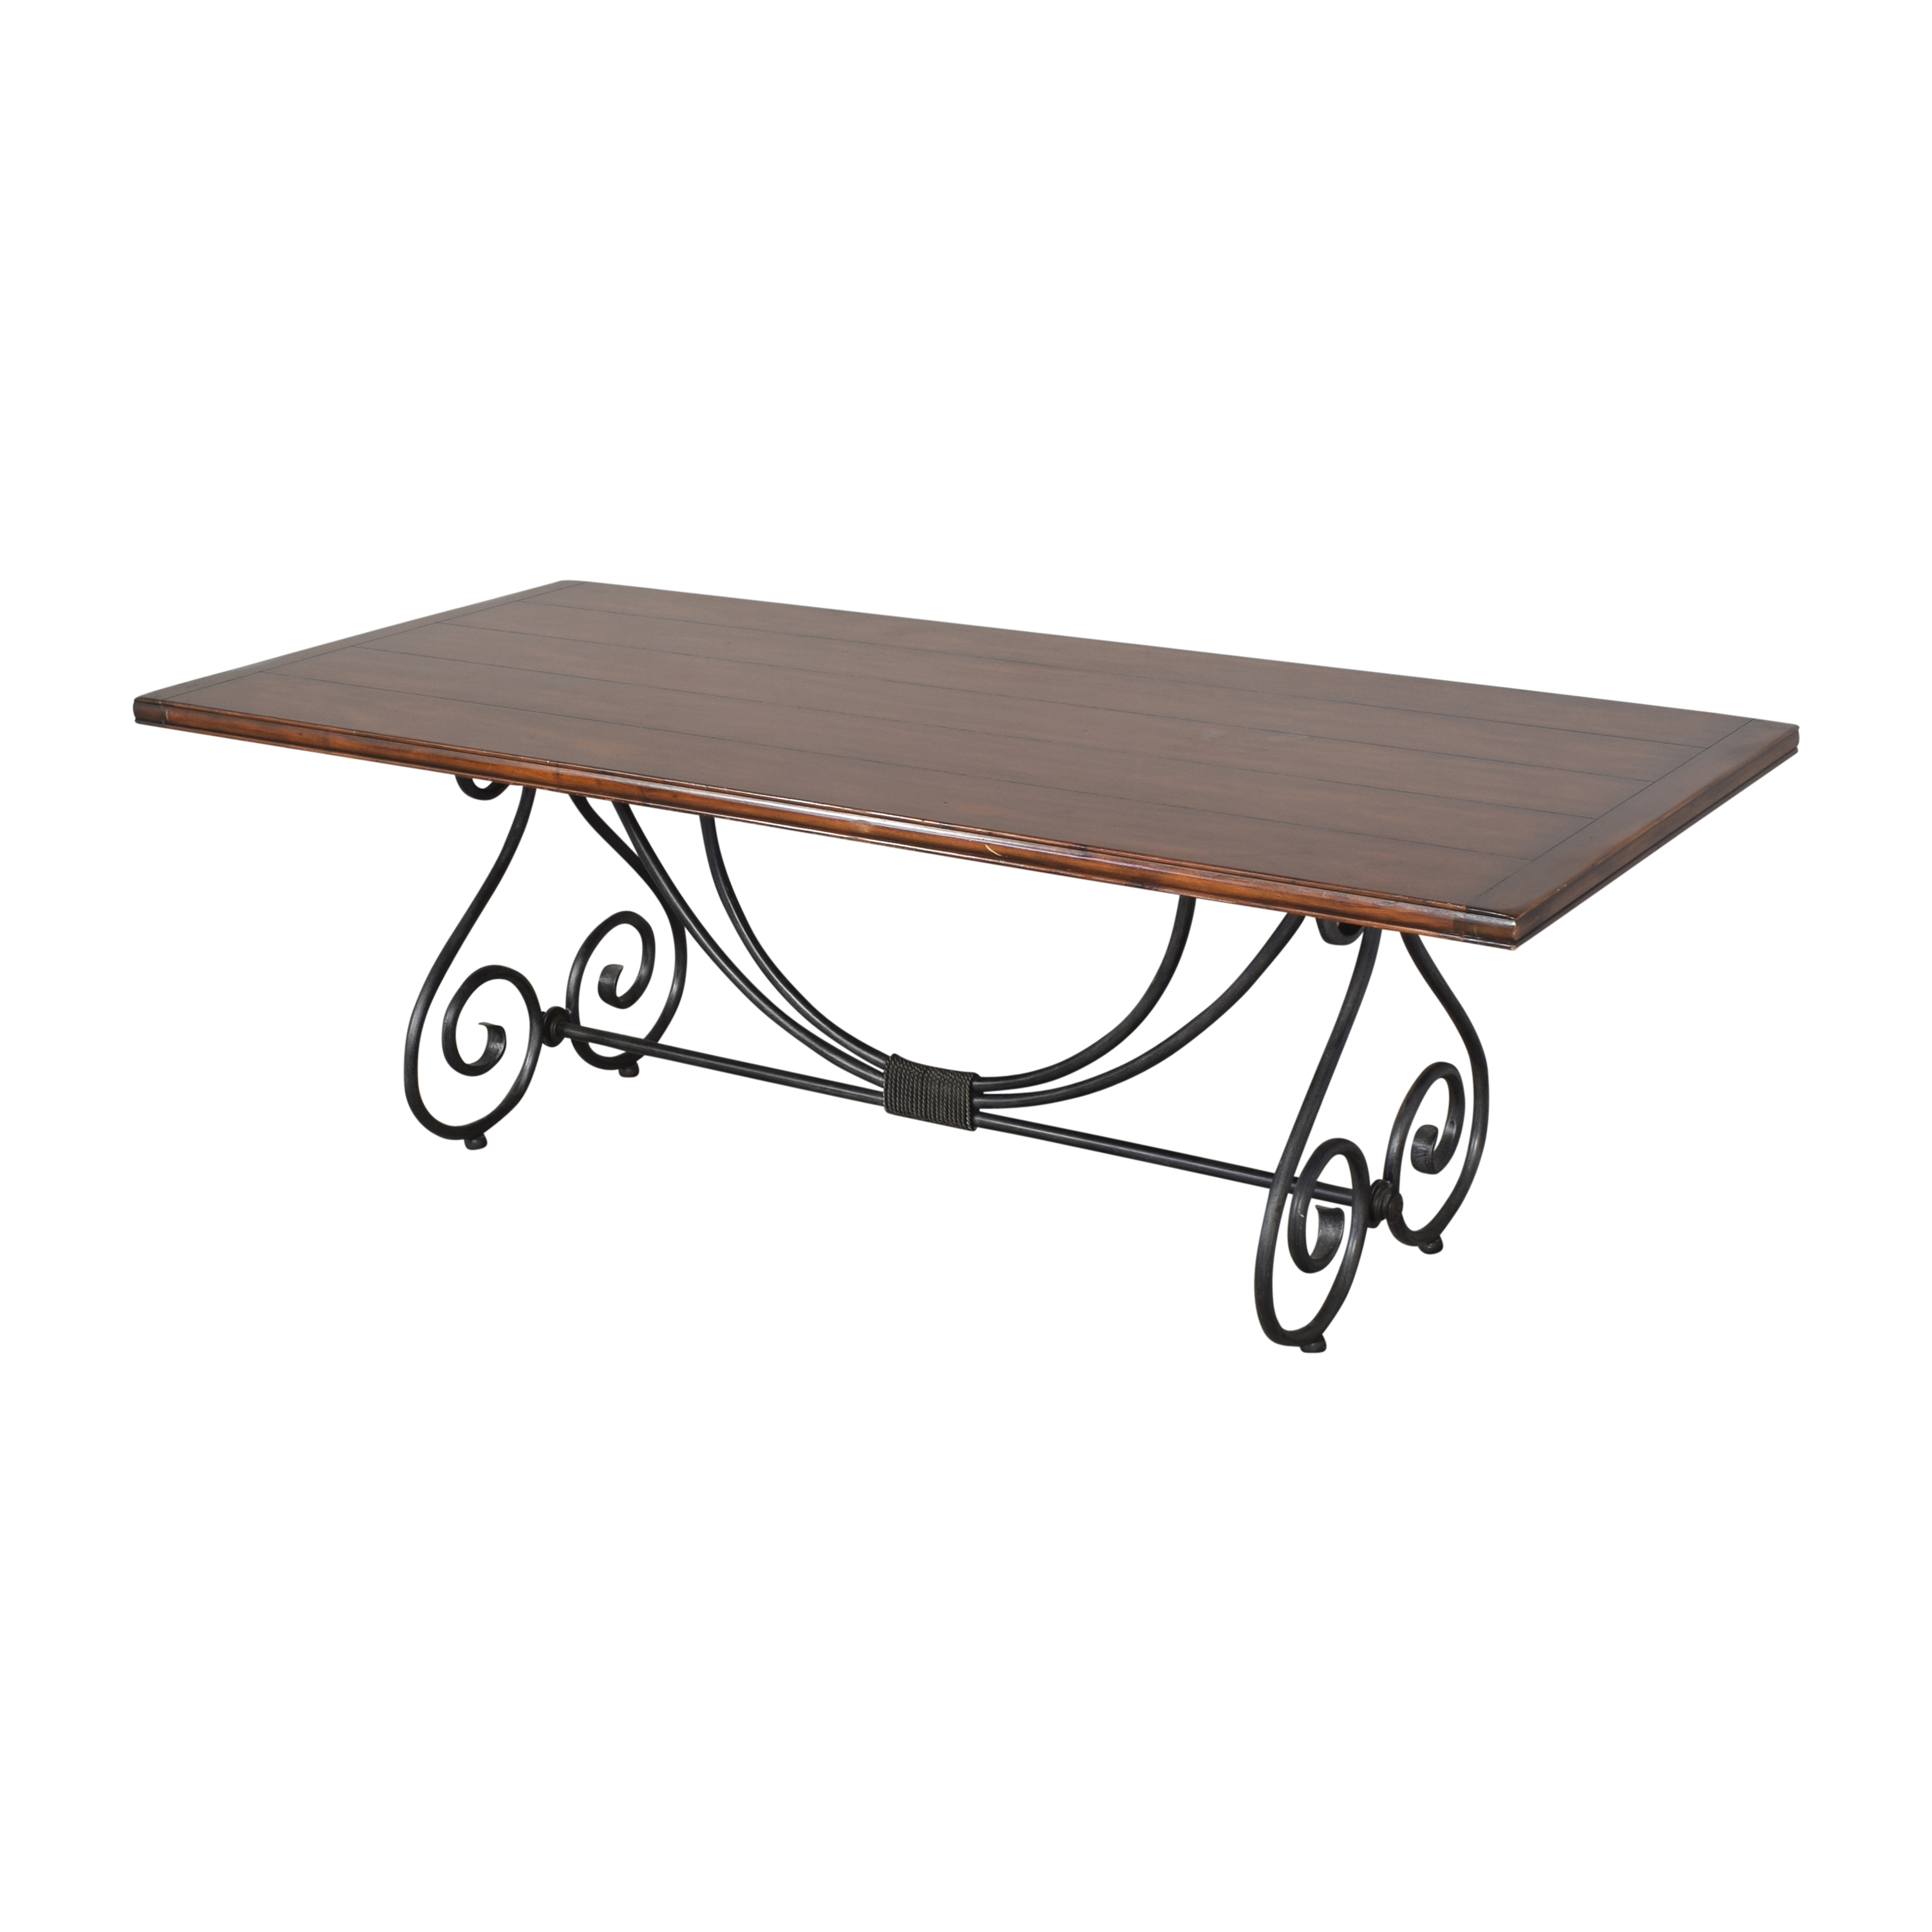 Theodore Alexander Theodore Alexander Rustic Dining Table